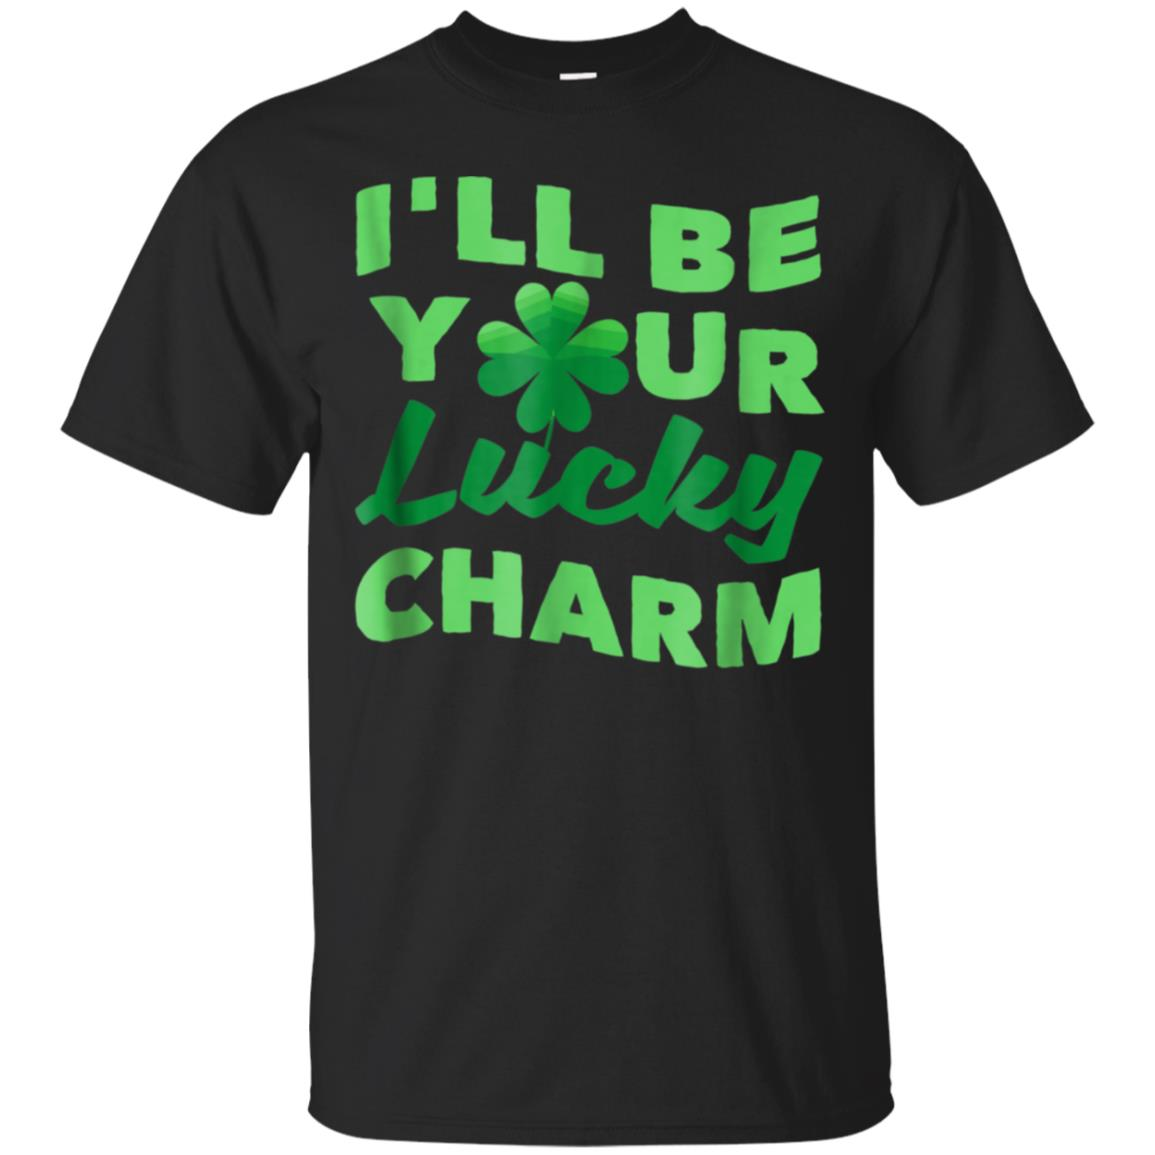 I'll Be Your Lucky Charm - Sexy St. Patrick's Day Shirt 99promocode